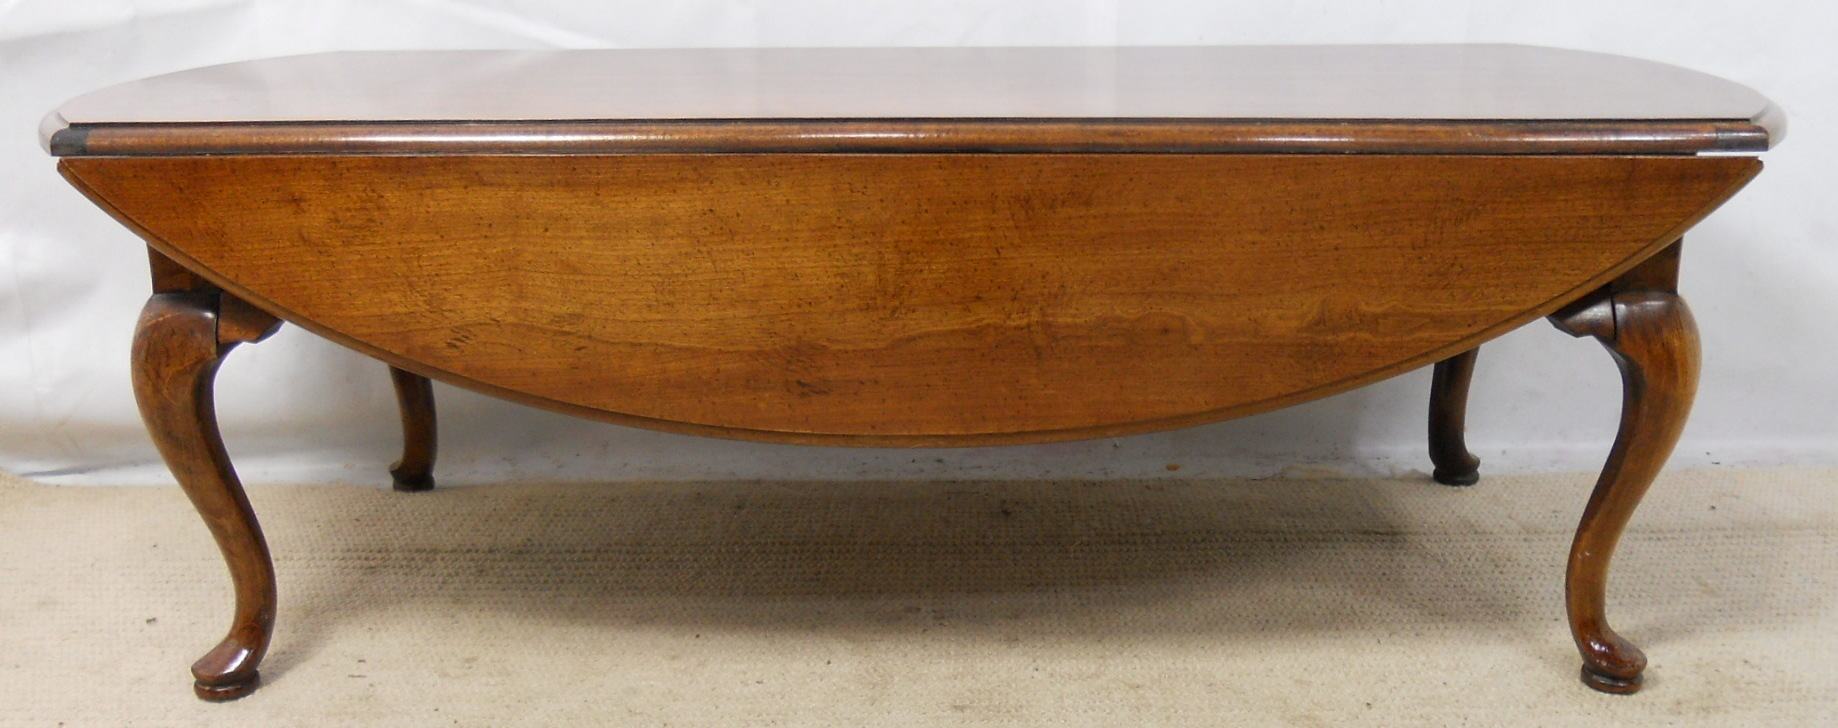 Oval Mahogany Dropleaf Coffee Table